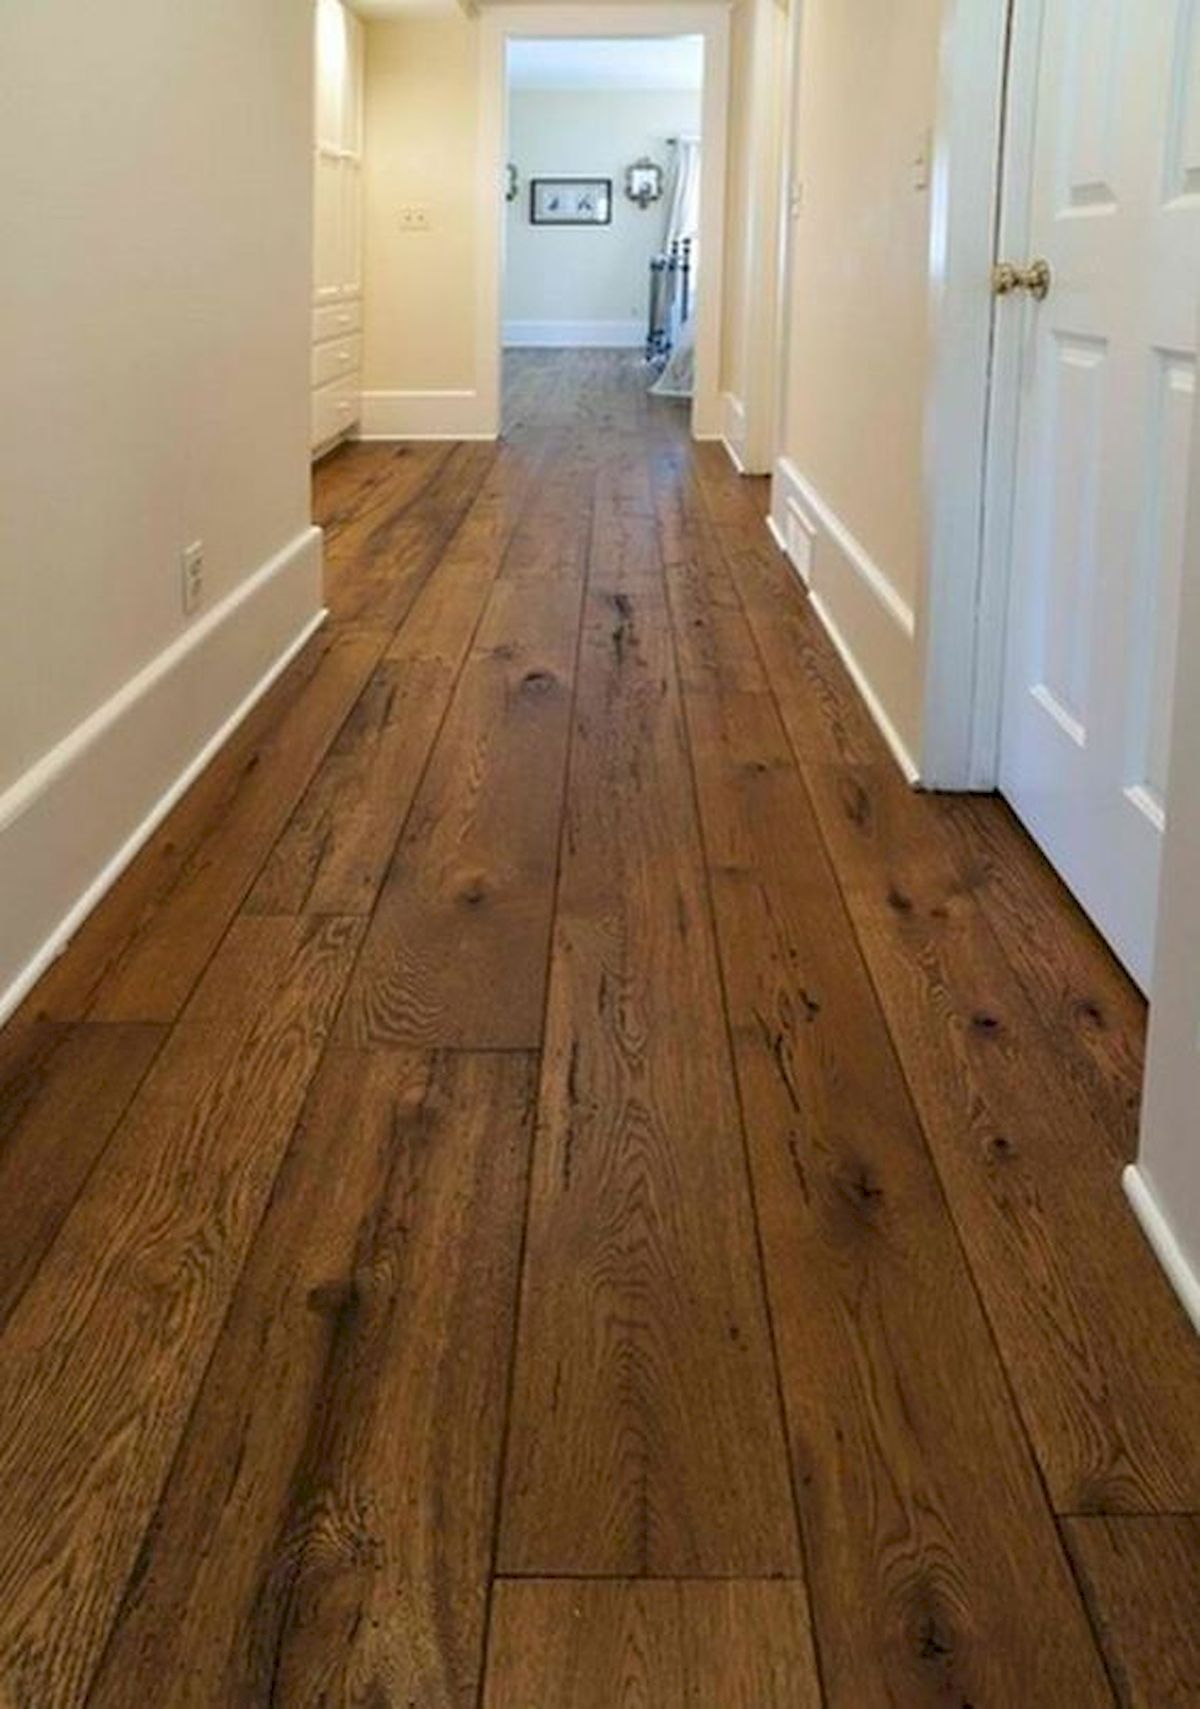 80 Gorgeous Hardwood Floor Ideas for Interior Home (41)